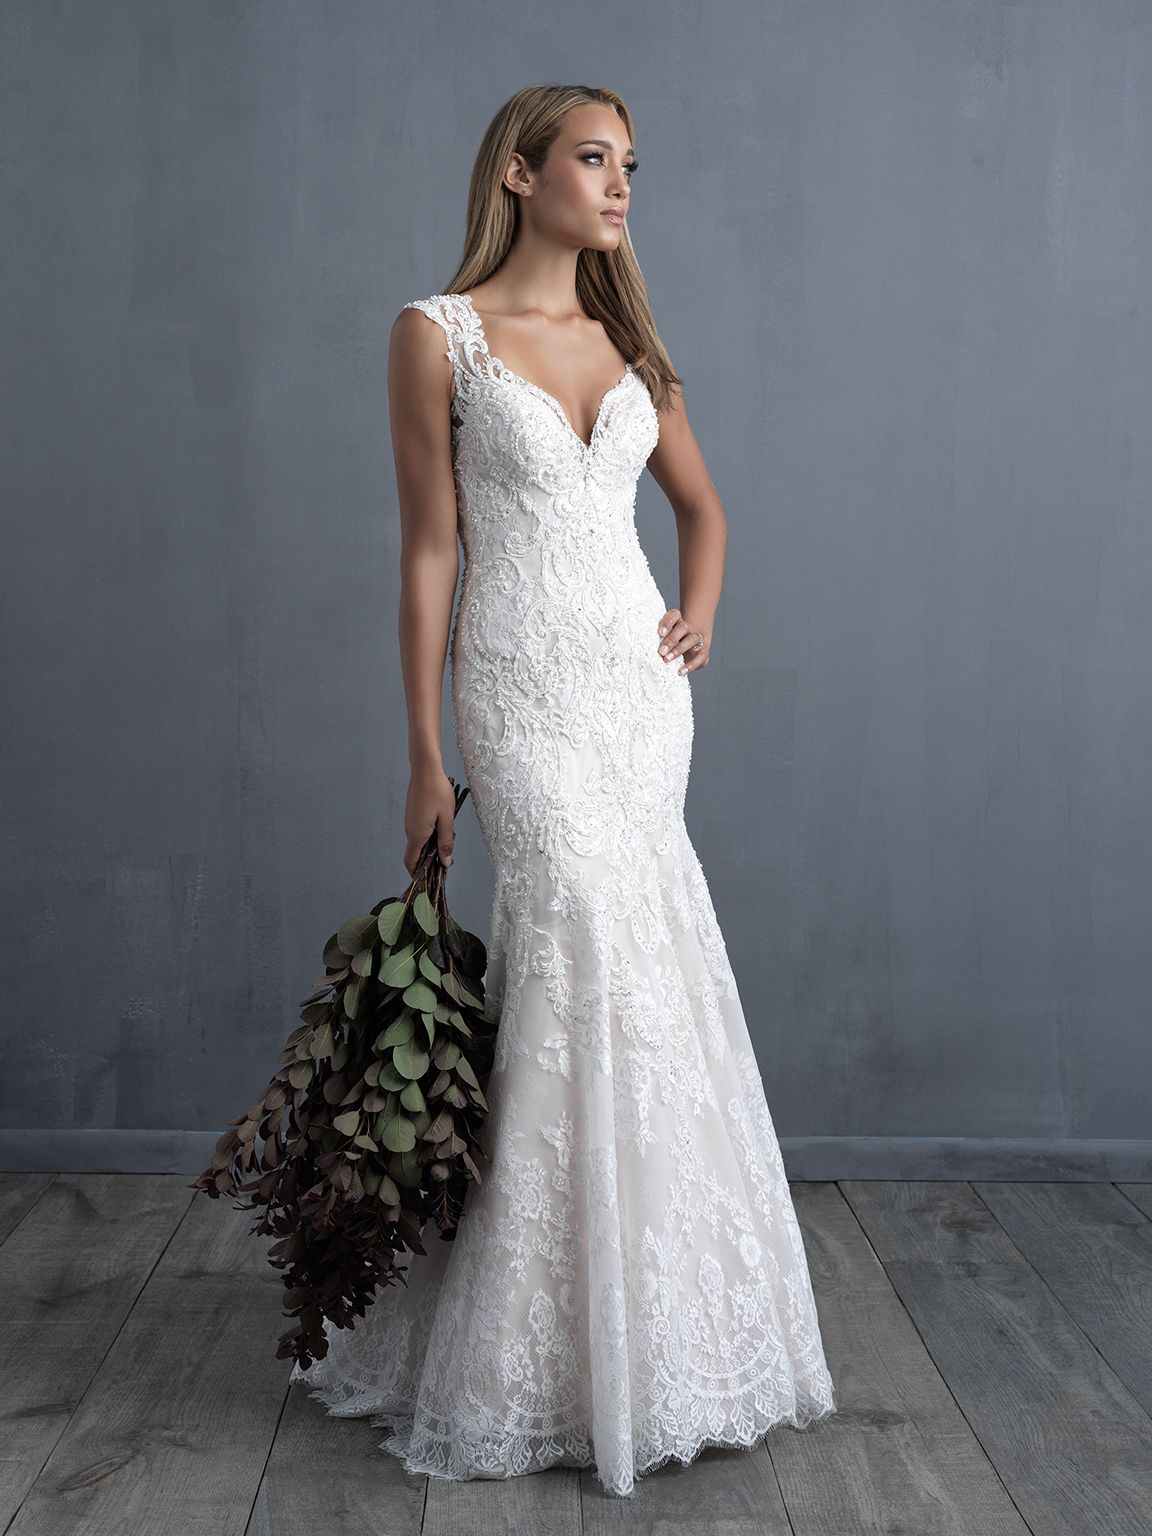 Allure Couture C490 Ivory/Nude Size 12 | Webster-Bridal Gowns ...